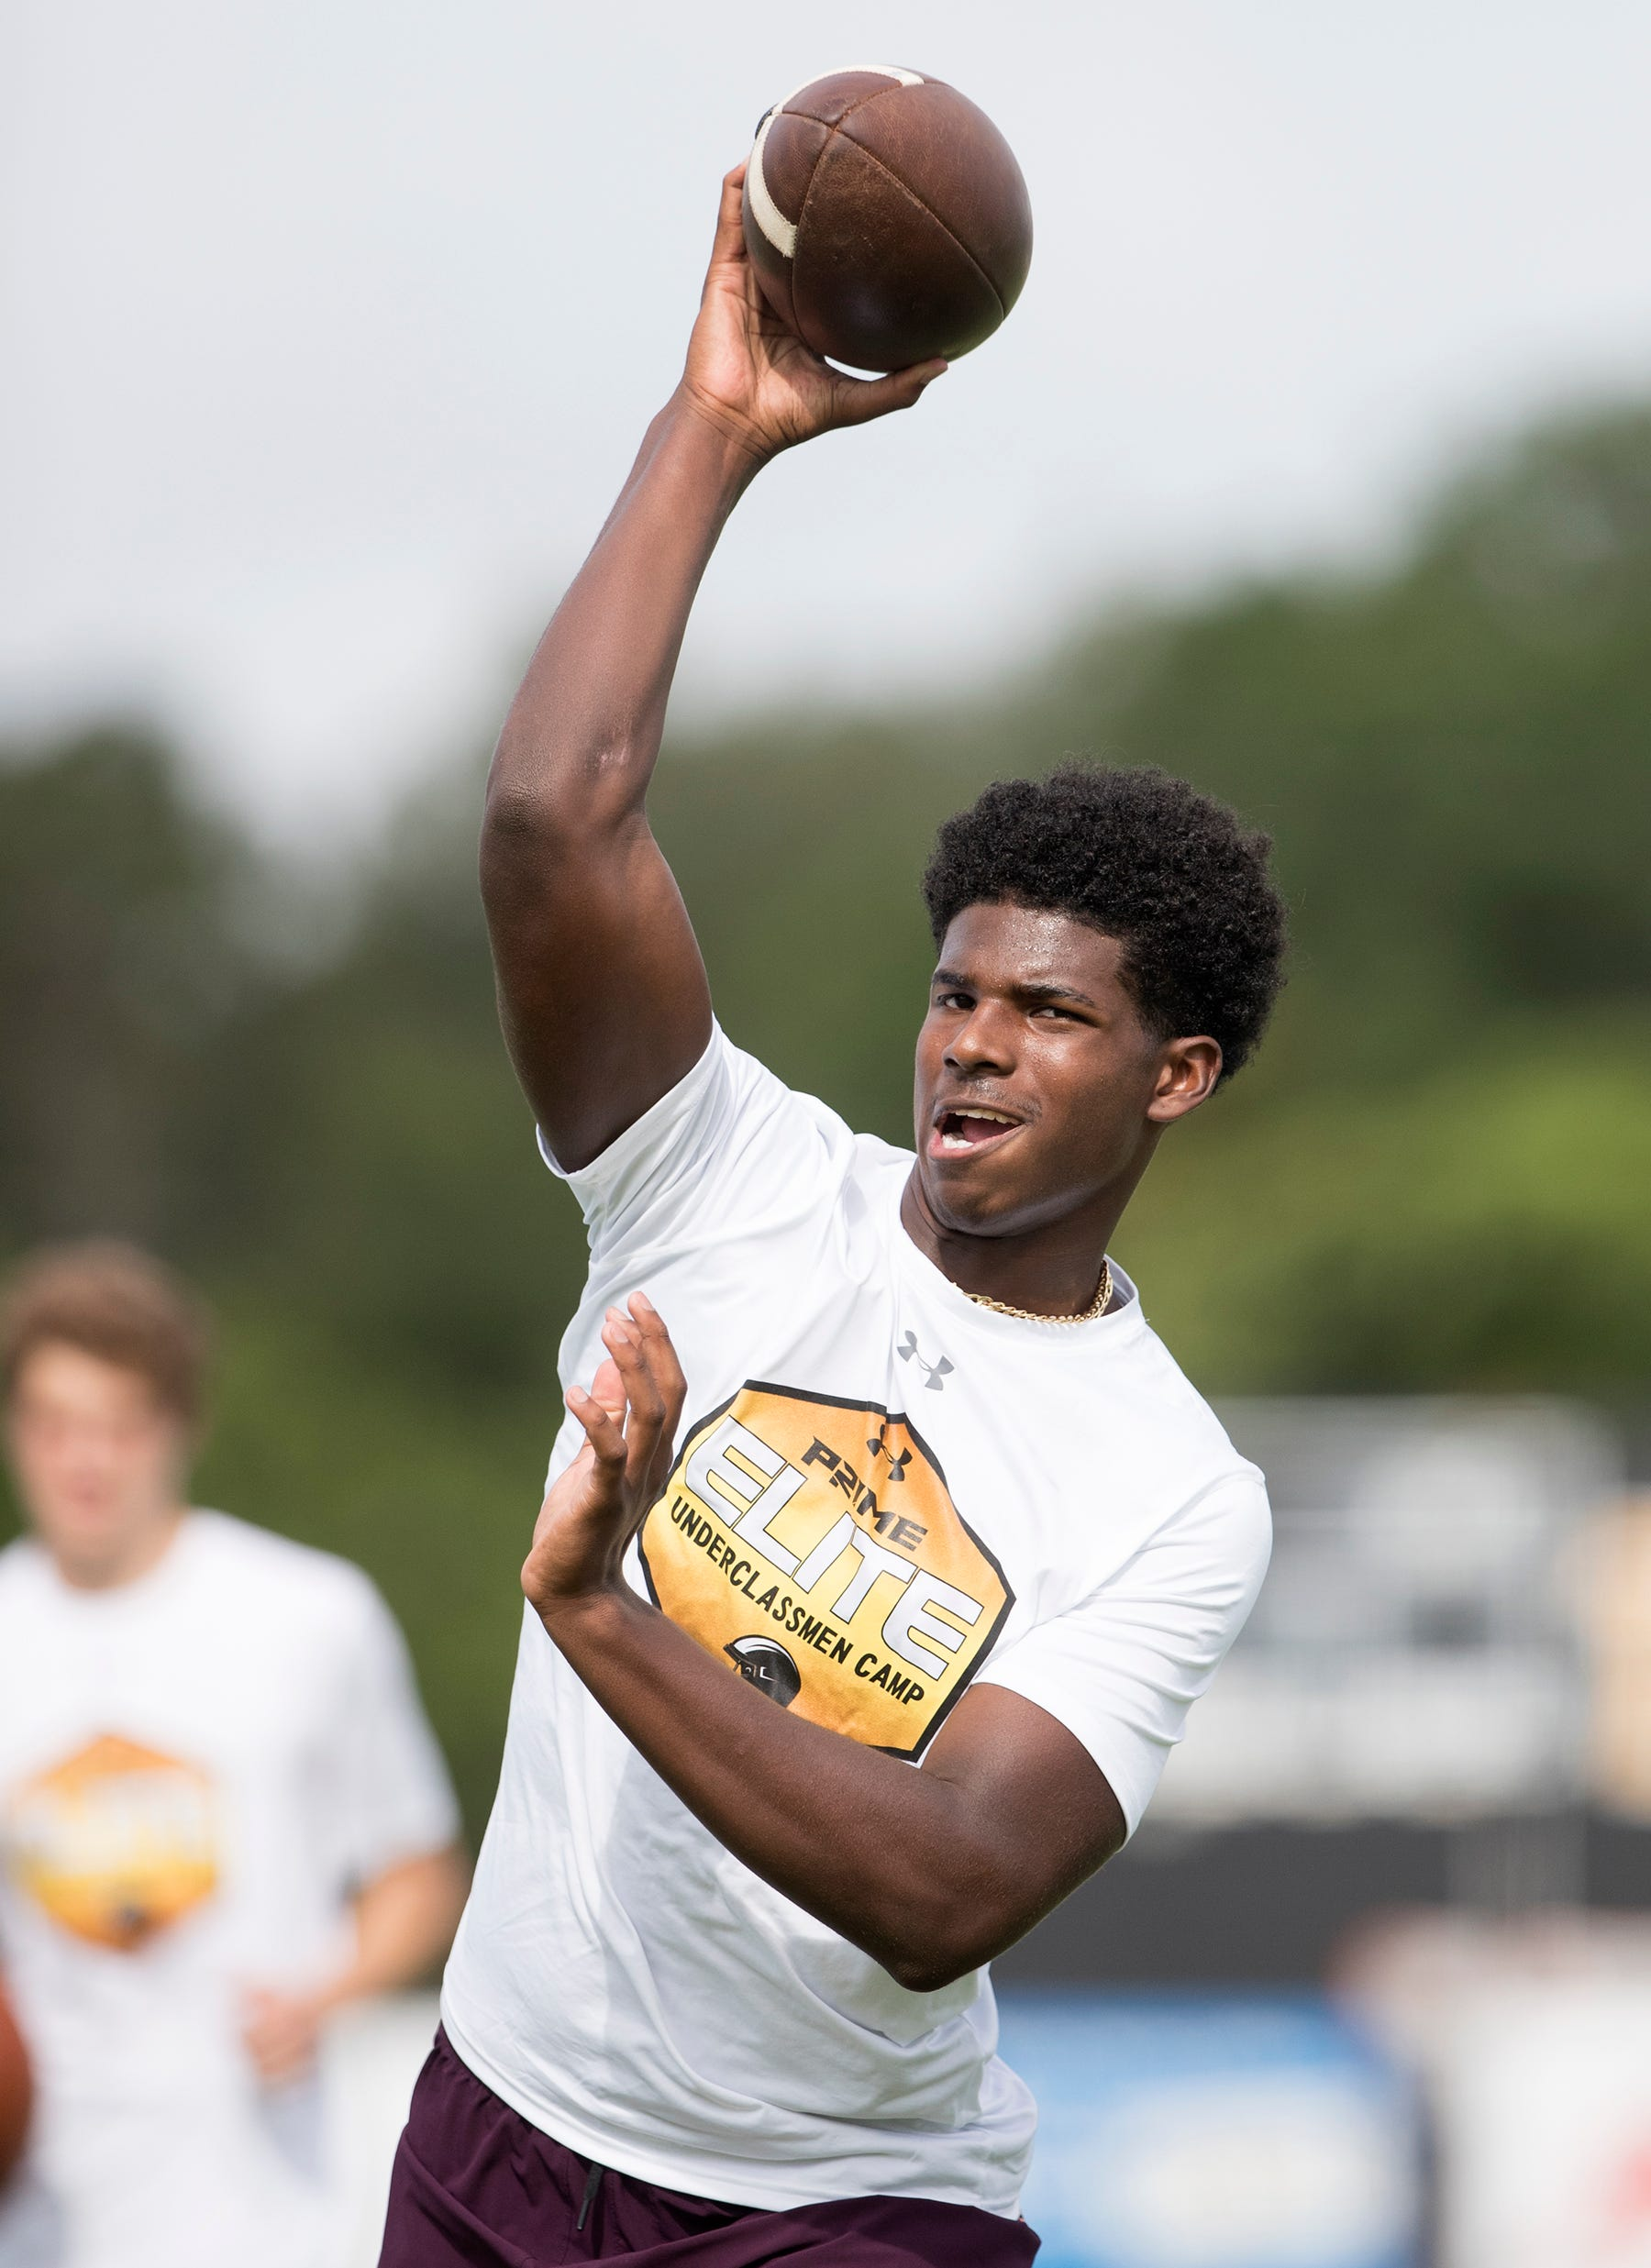 Trinity Christian Shedeur Sanders competes in the Prime Elite Underclassmen Football Camp on Sunday at Bishop Verot in Fort Myers. More than 700 middle and high school athletes attended the camp that was put on by Under Armour and Deion Sanders.